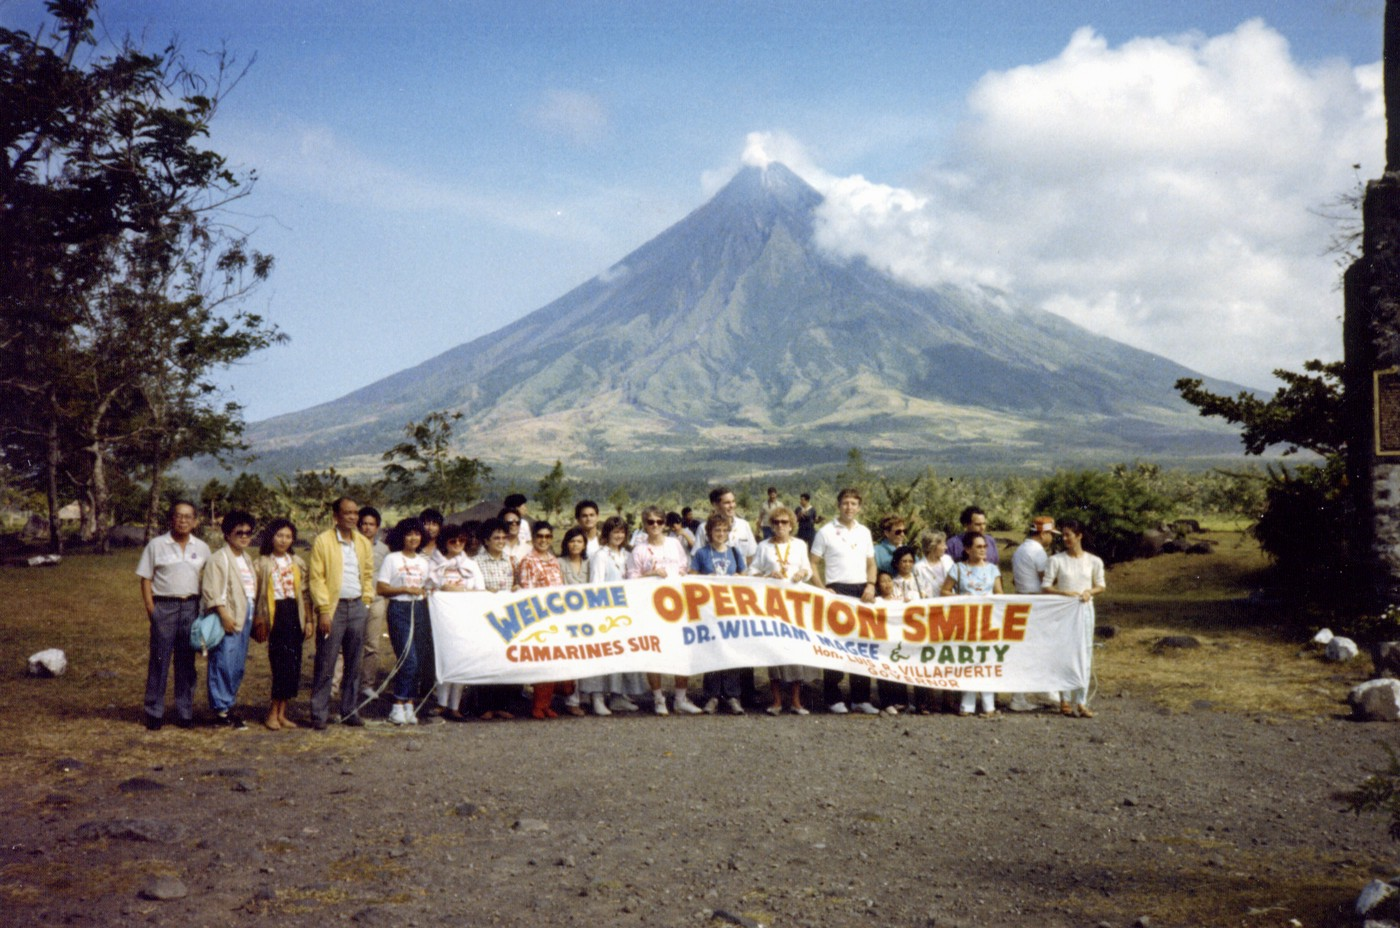 Operation Smile volunteers standing in front of a mountain in the Philippines holding a sign.